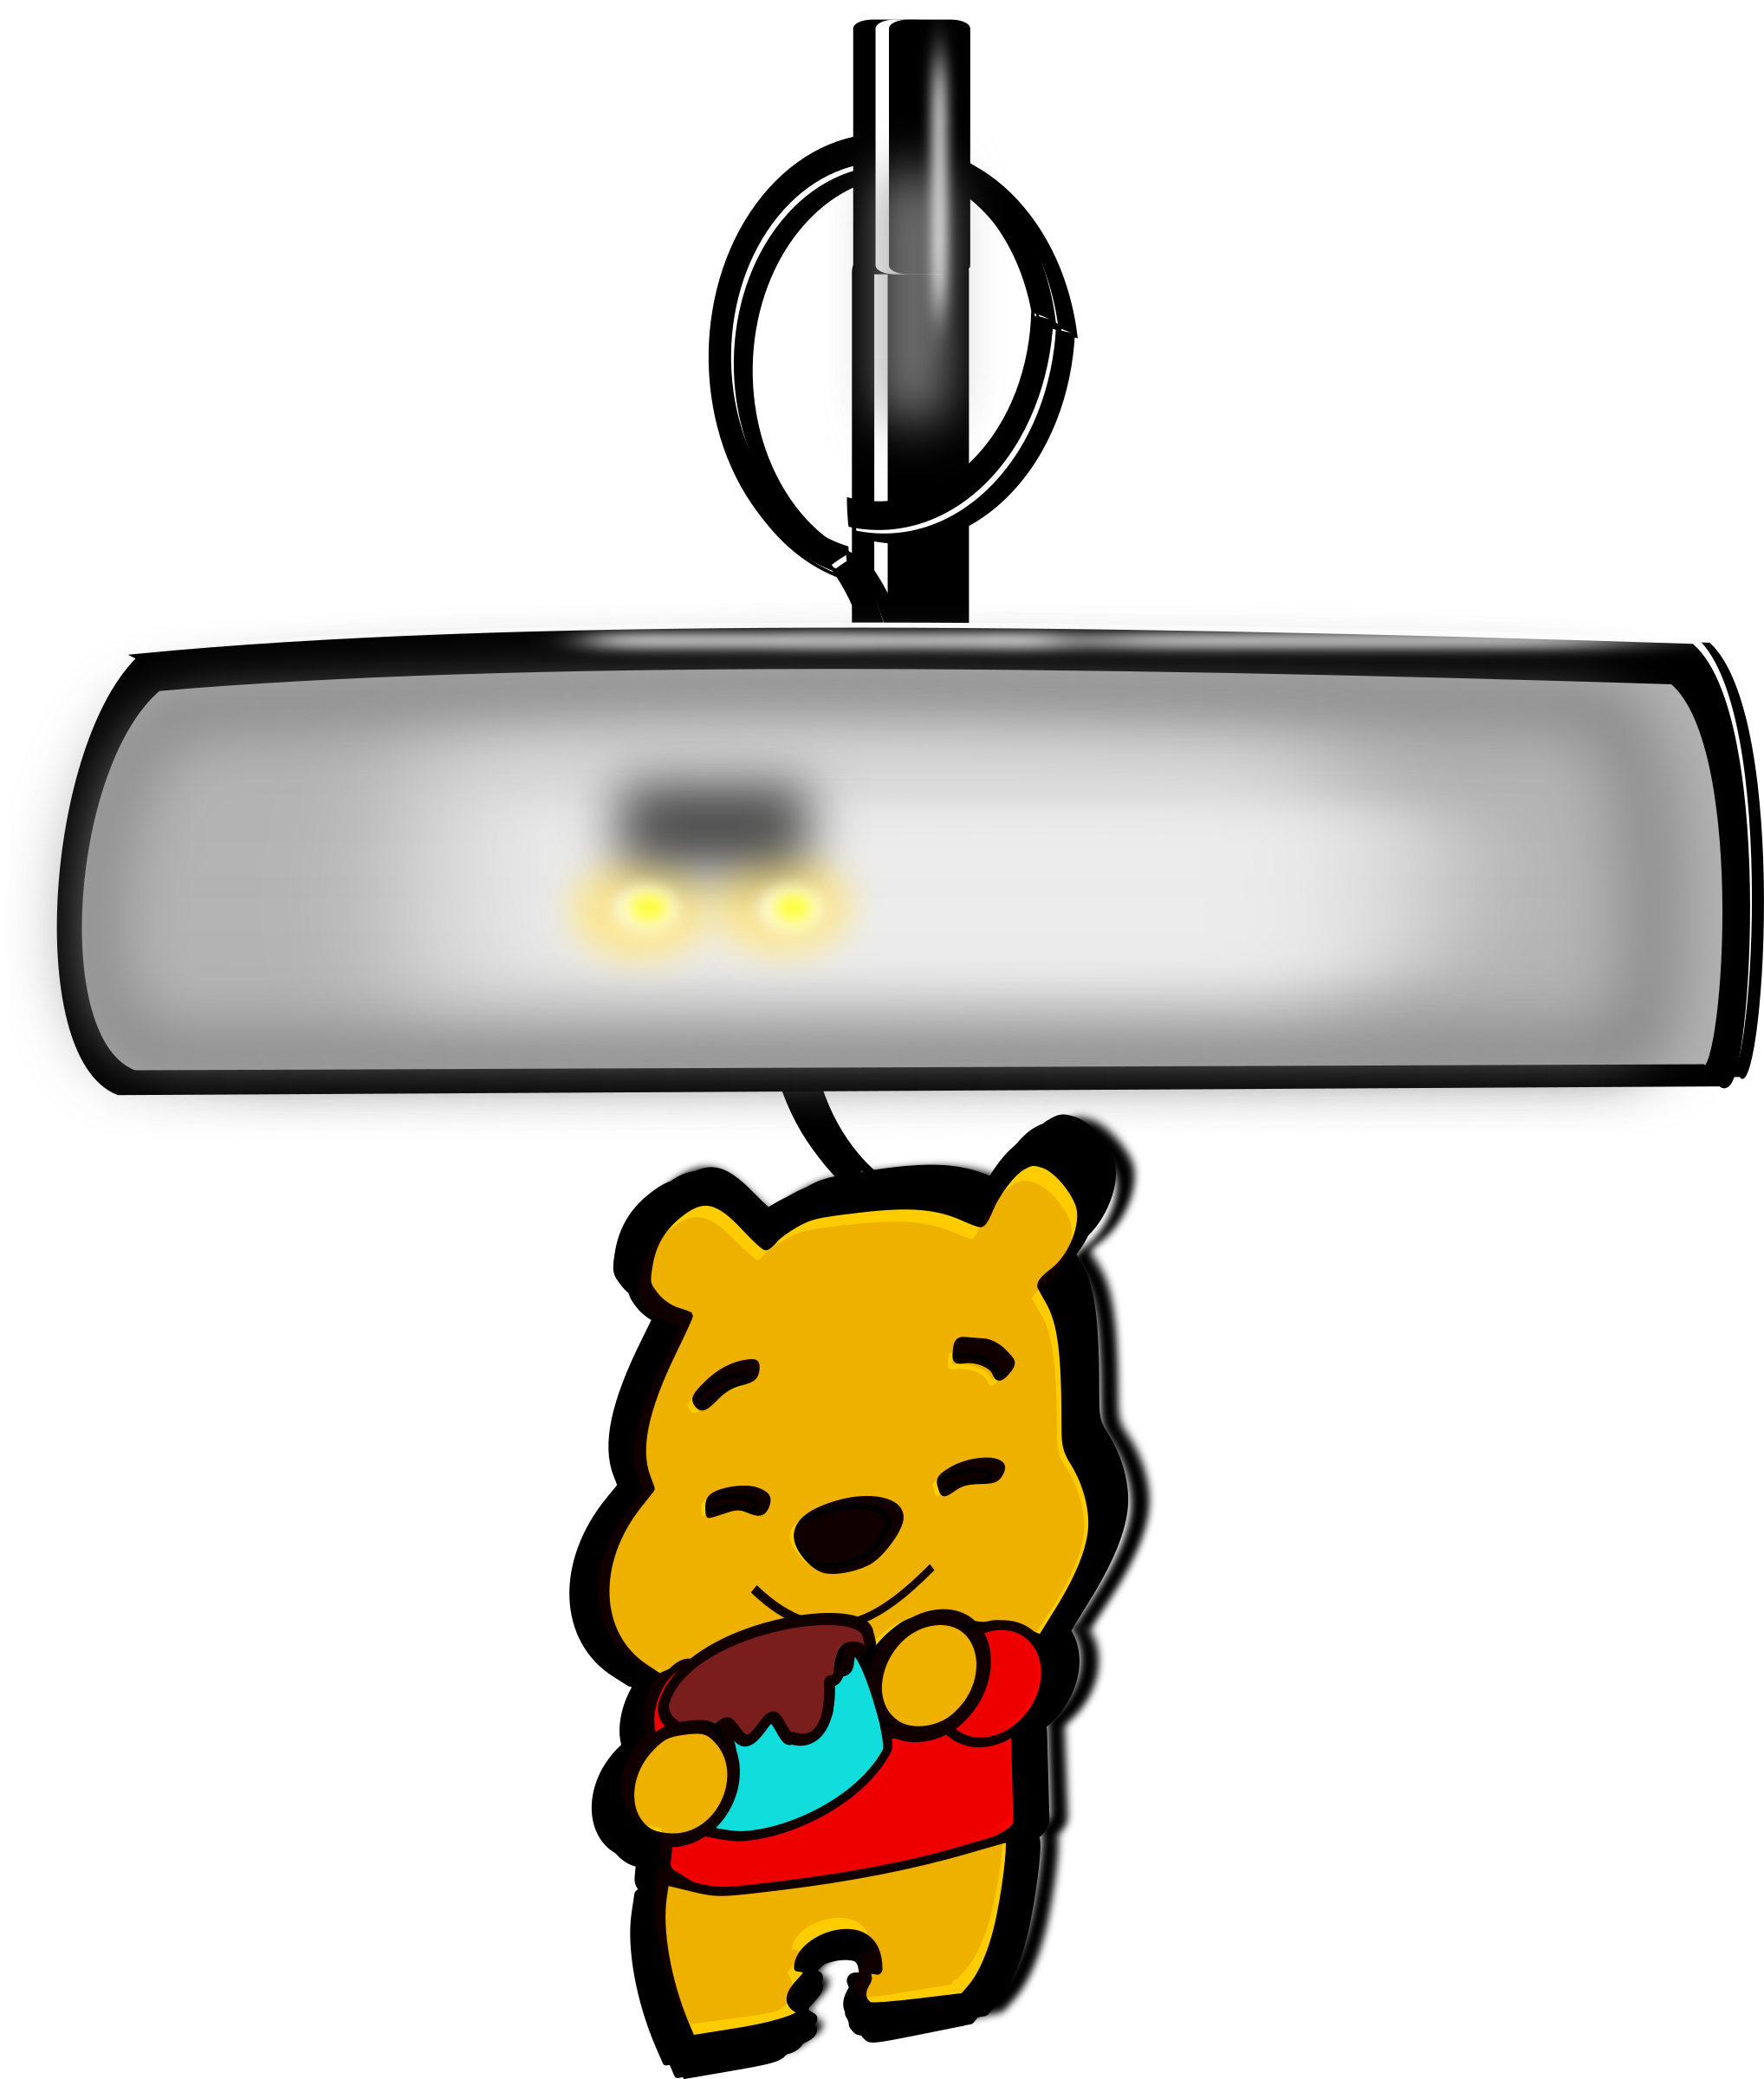 winnie pooh air freshener by inkscapeforum.it